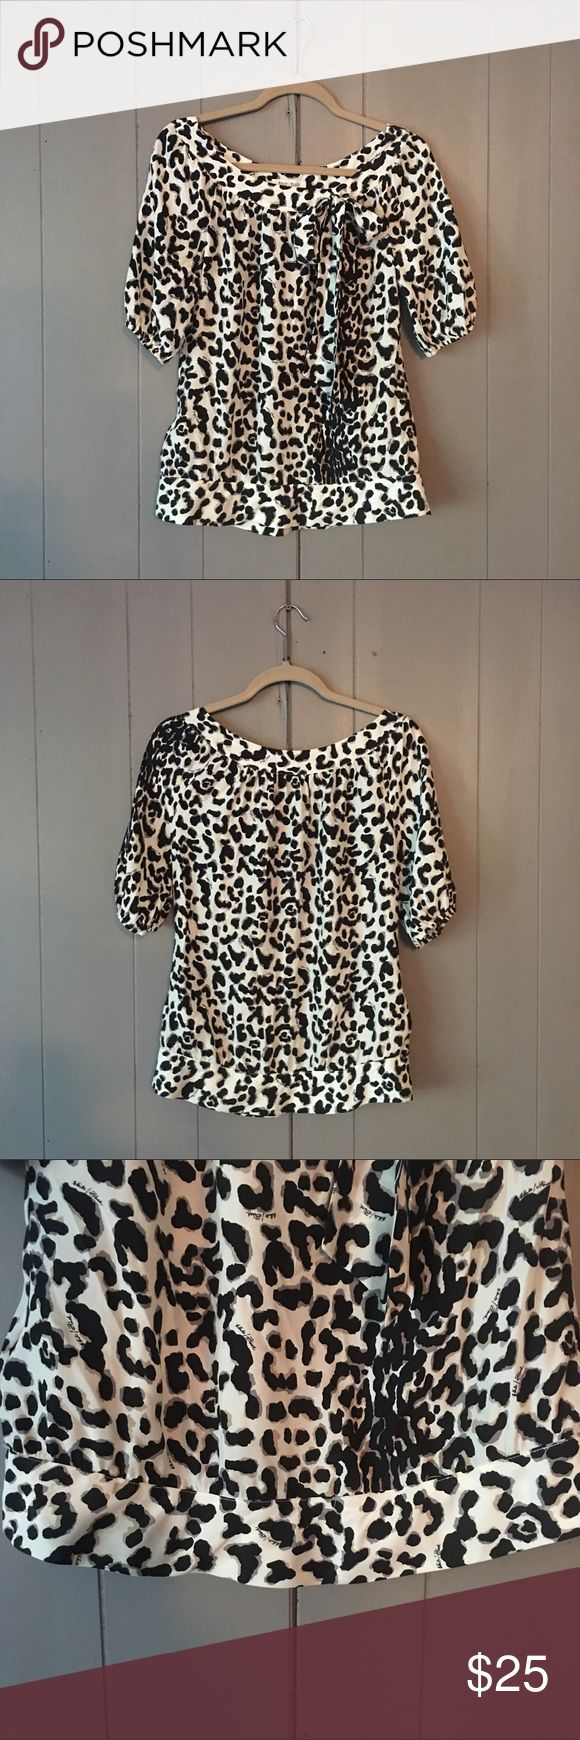 """✨Sale✨White House Black Market Animal print top✨ This top is so cute and in like new condition! 100% Silk. Bust is 34 (armpit to armpit is 17""""). Length is 25"""". White House Black Market Tops"""